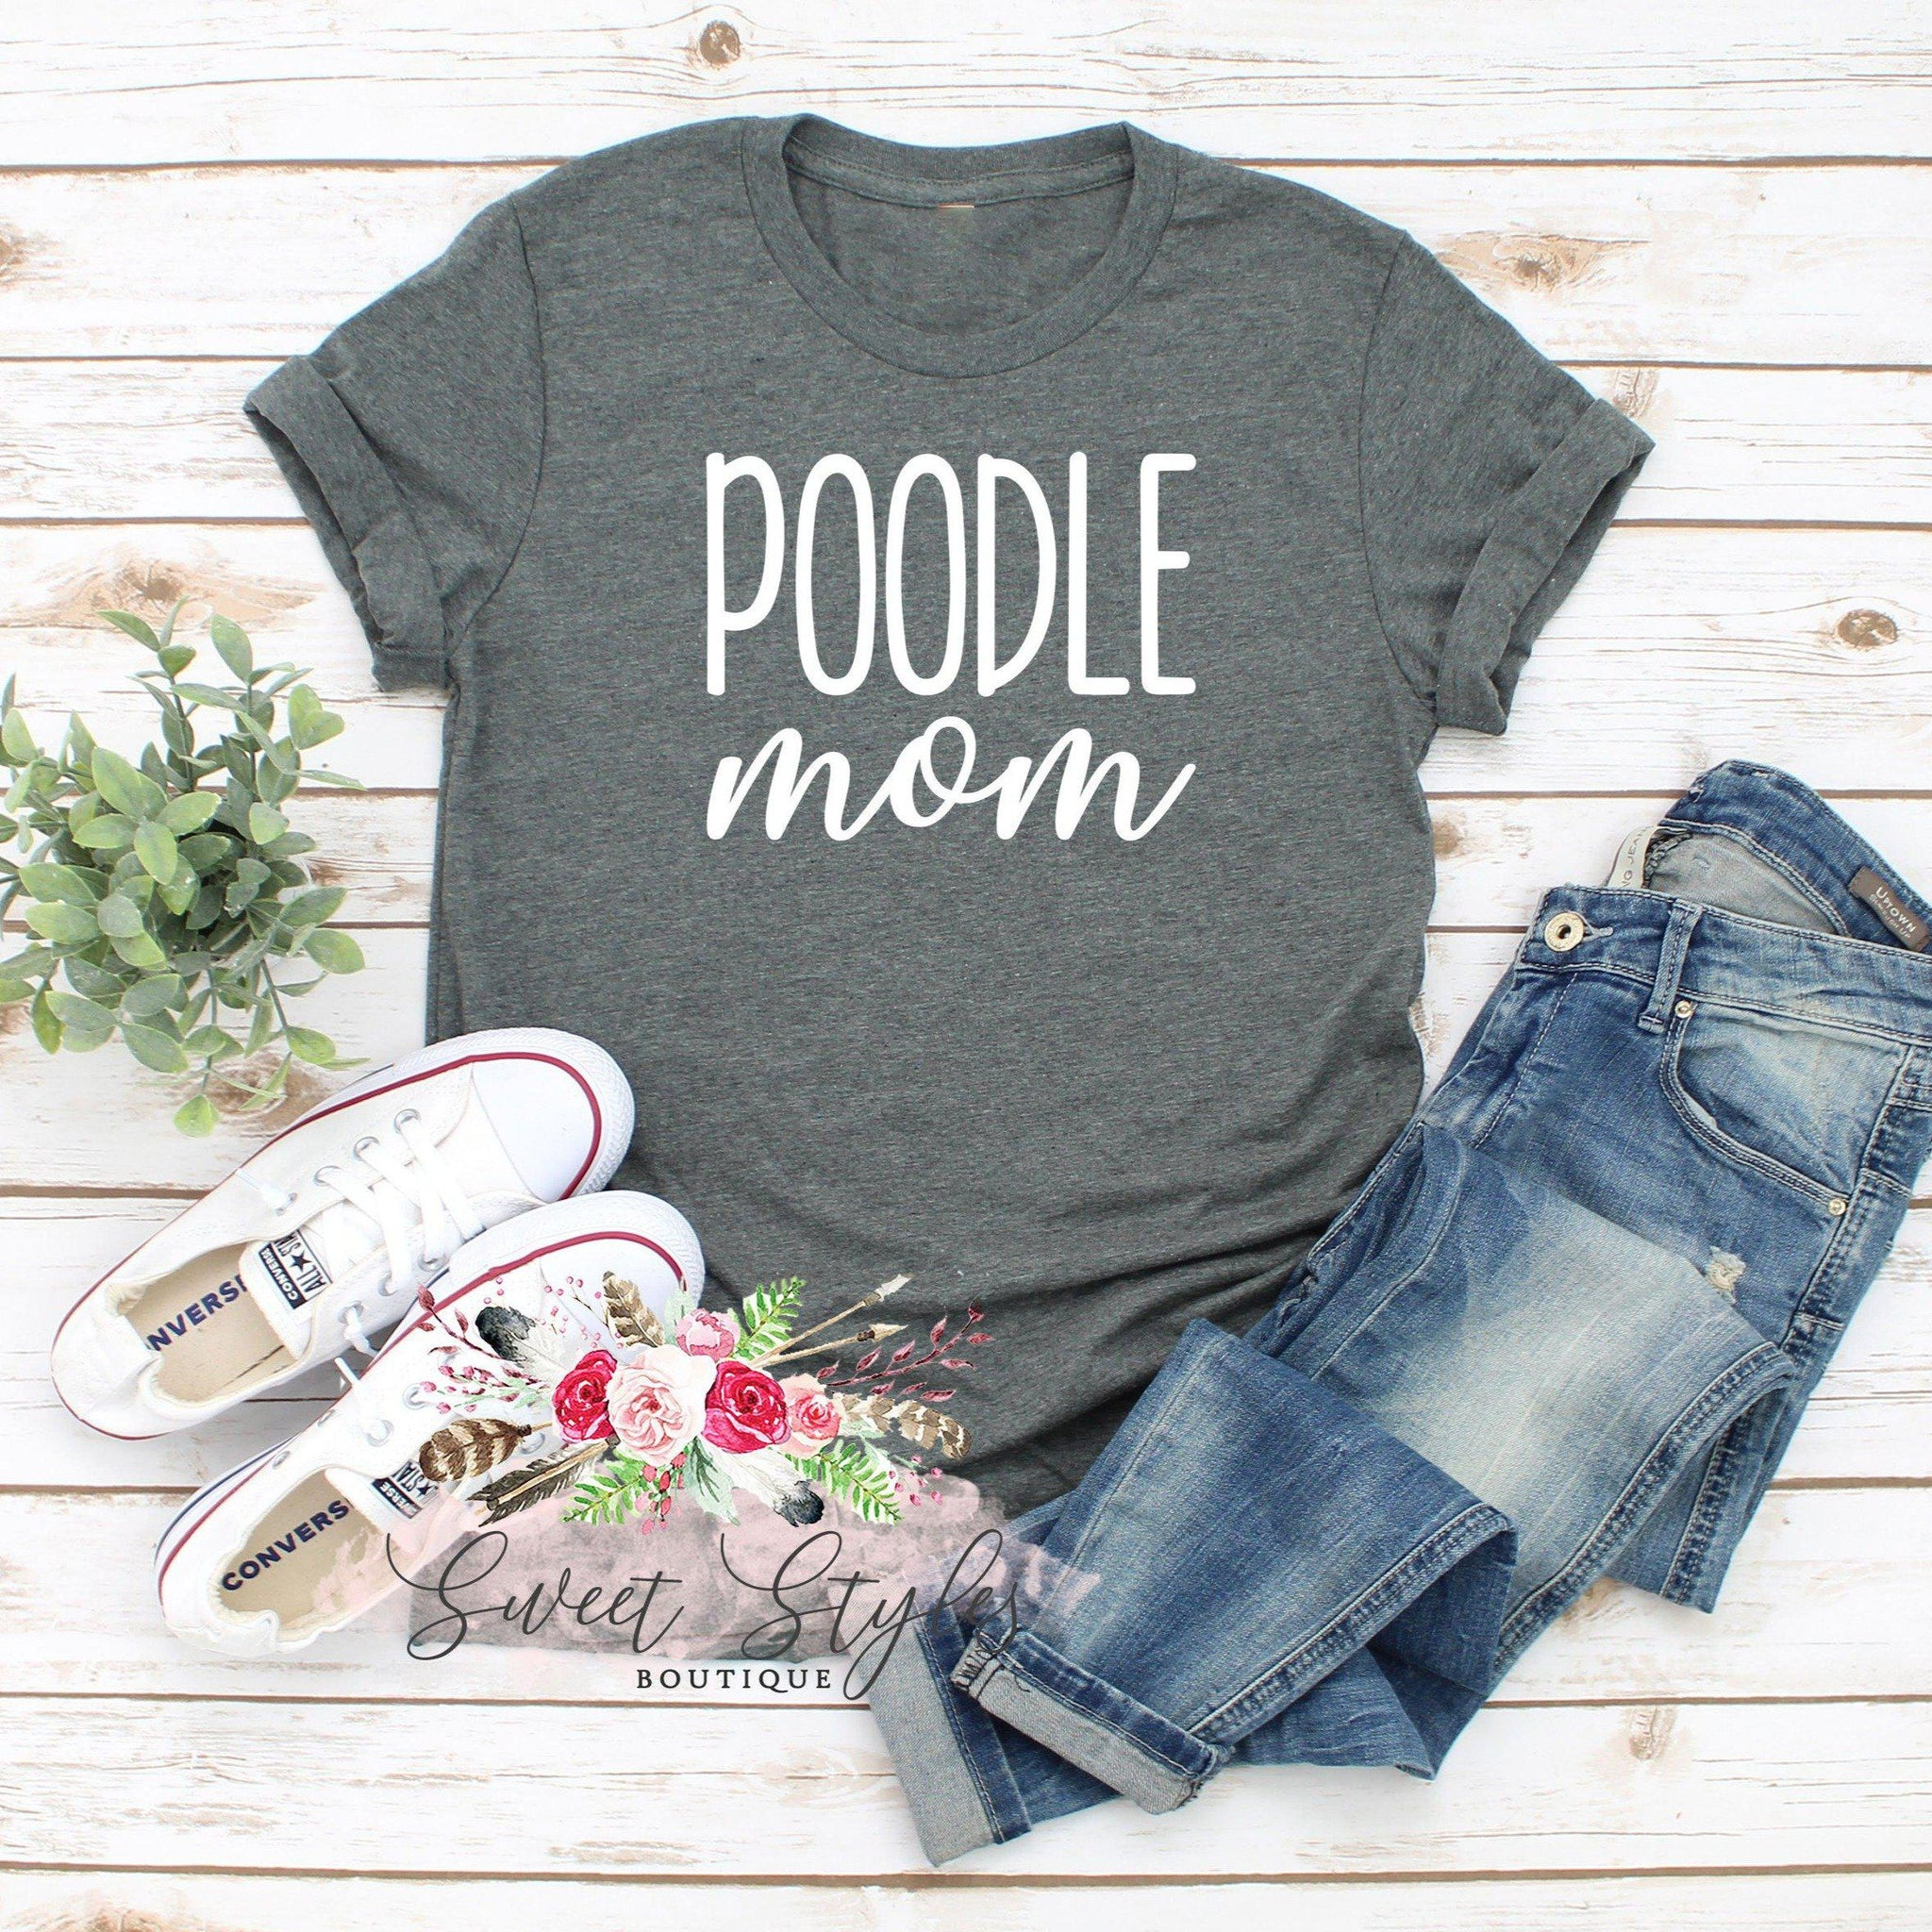 Dog mom Poodle T-shirt-Sweet Styles boutique